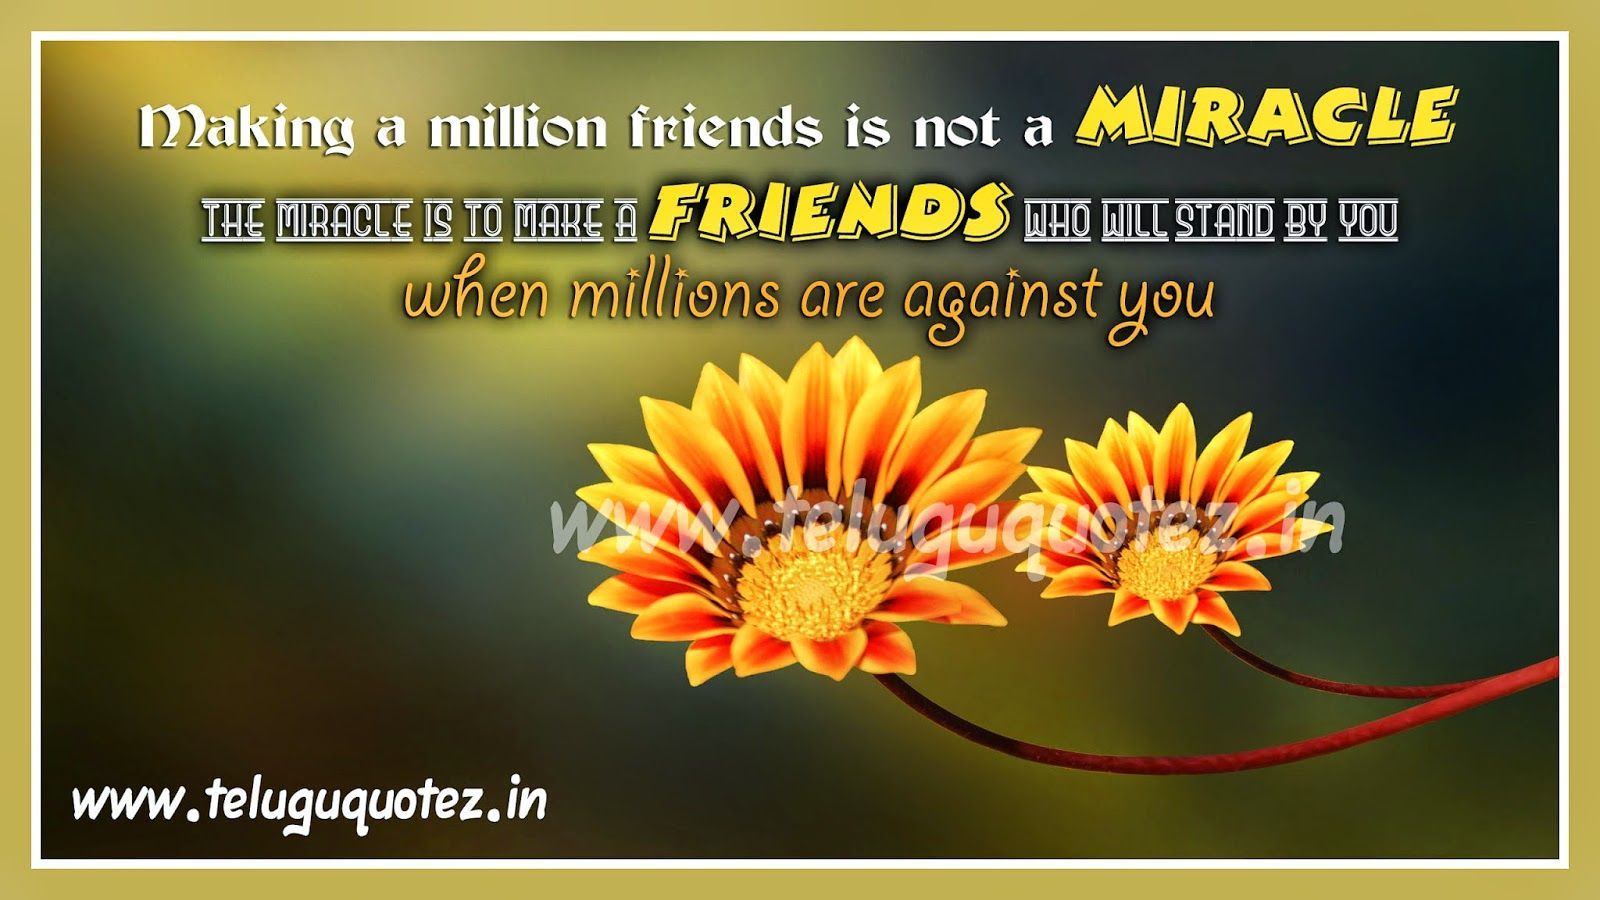 Inspirational Quotes About Friendships Teluguquotez.in Inspirational Friendship Quotes Hd Wallpapers